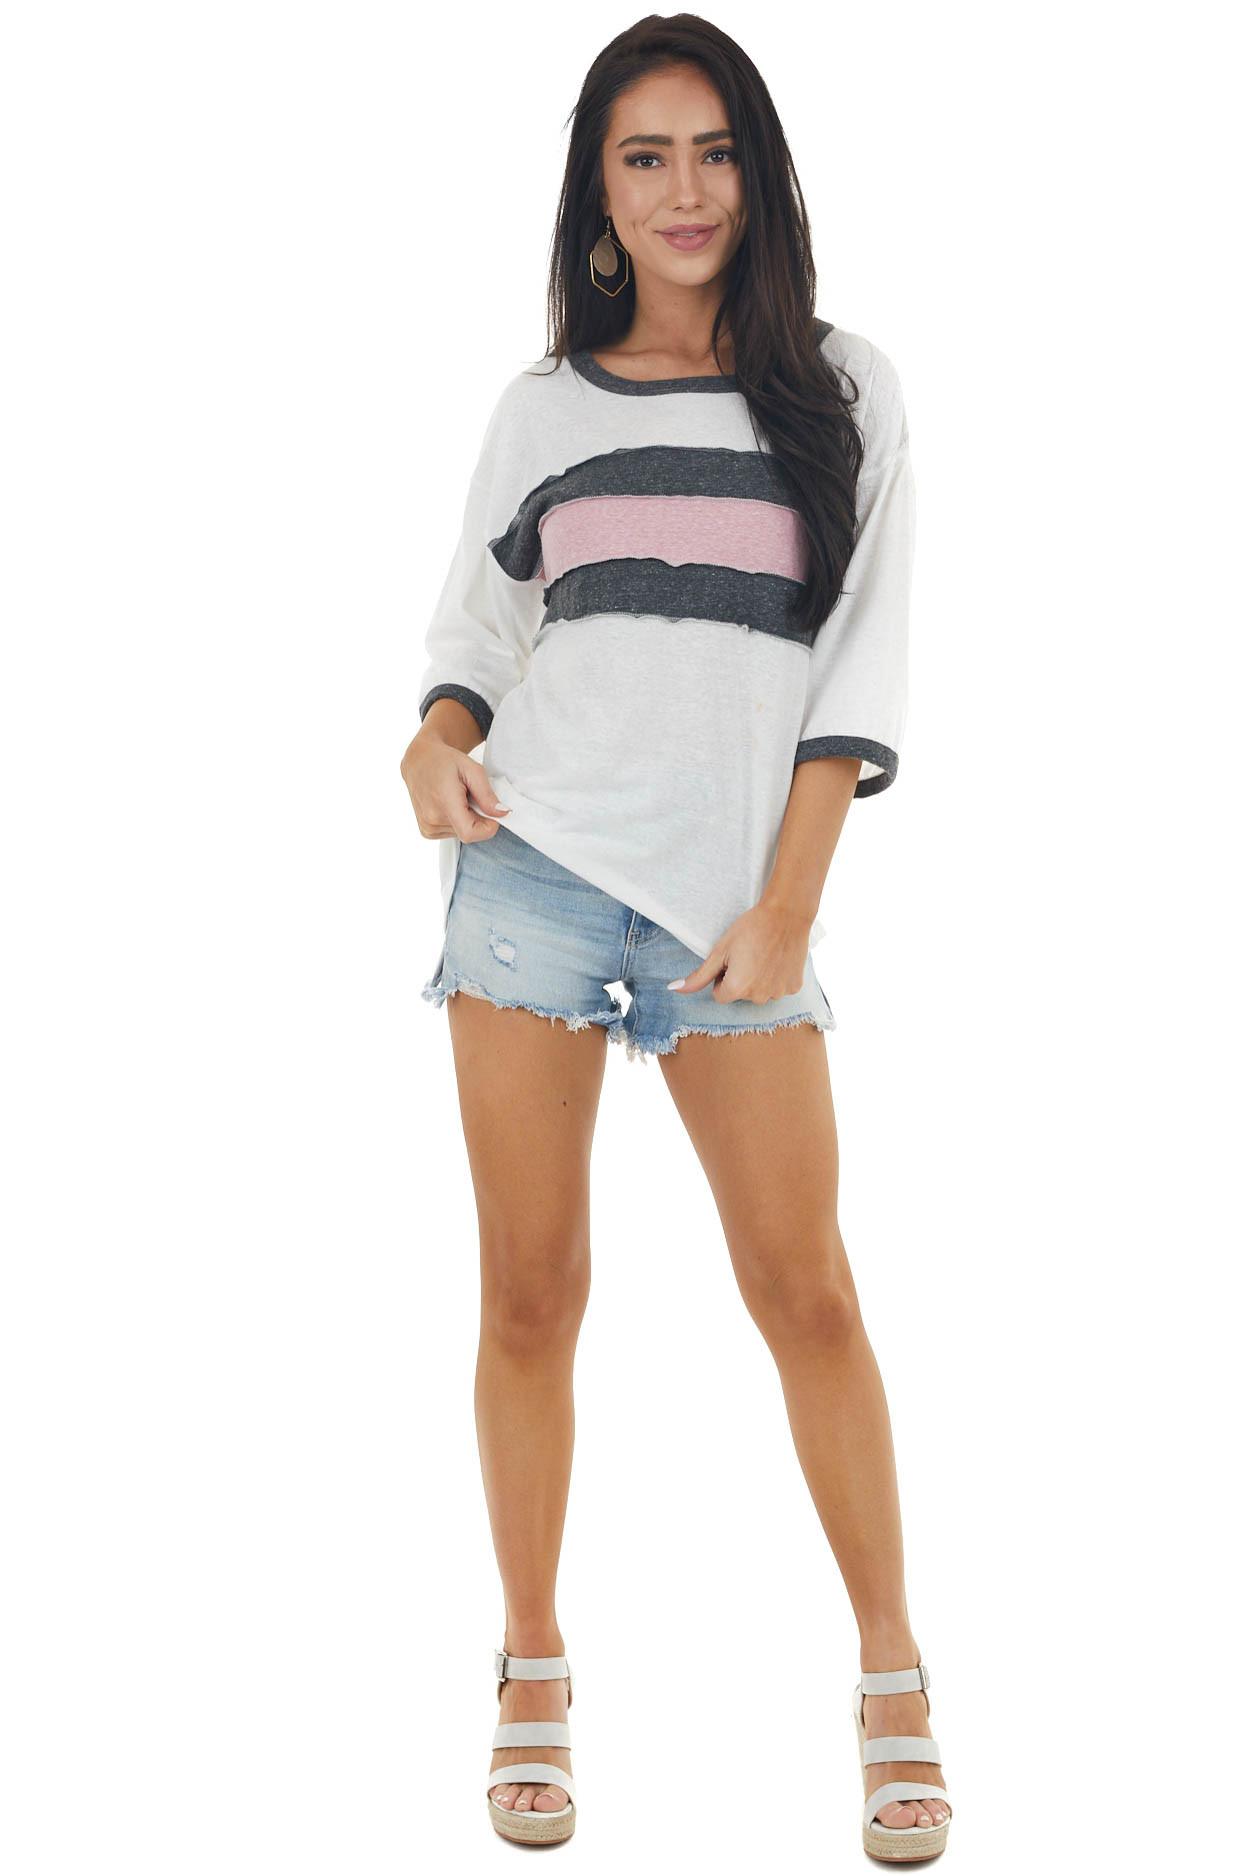 Off White and Charcoal Striped Colorblock Ringer Neck Top